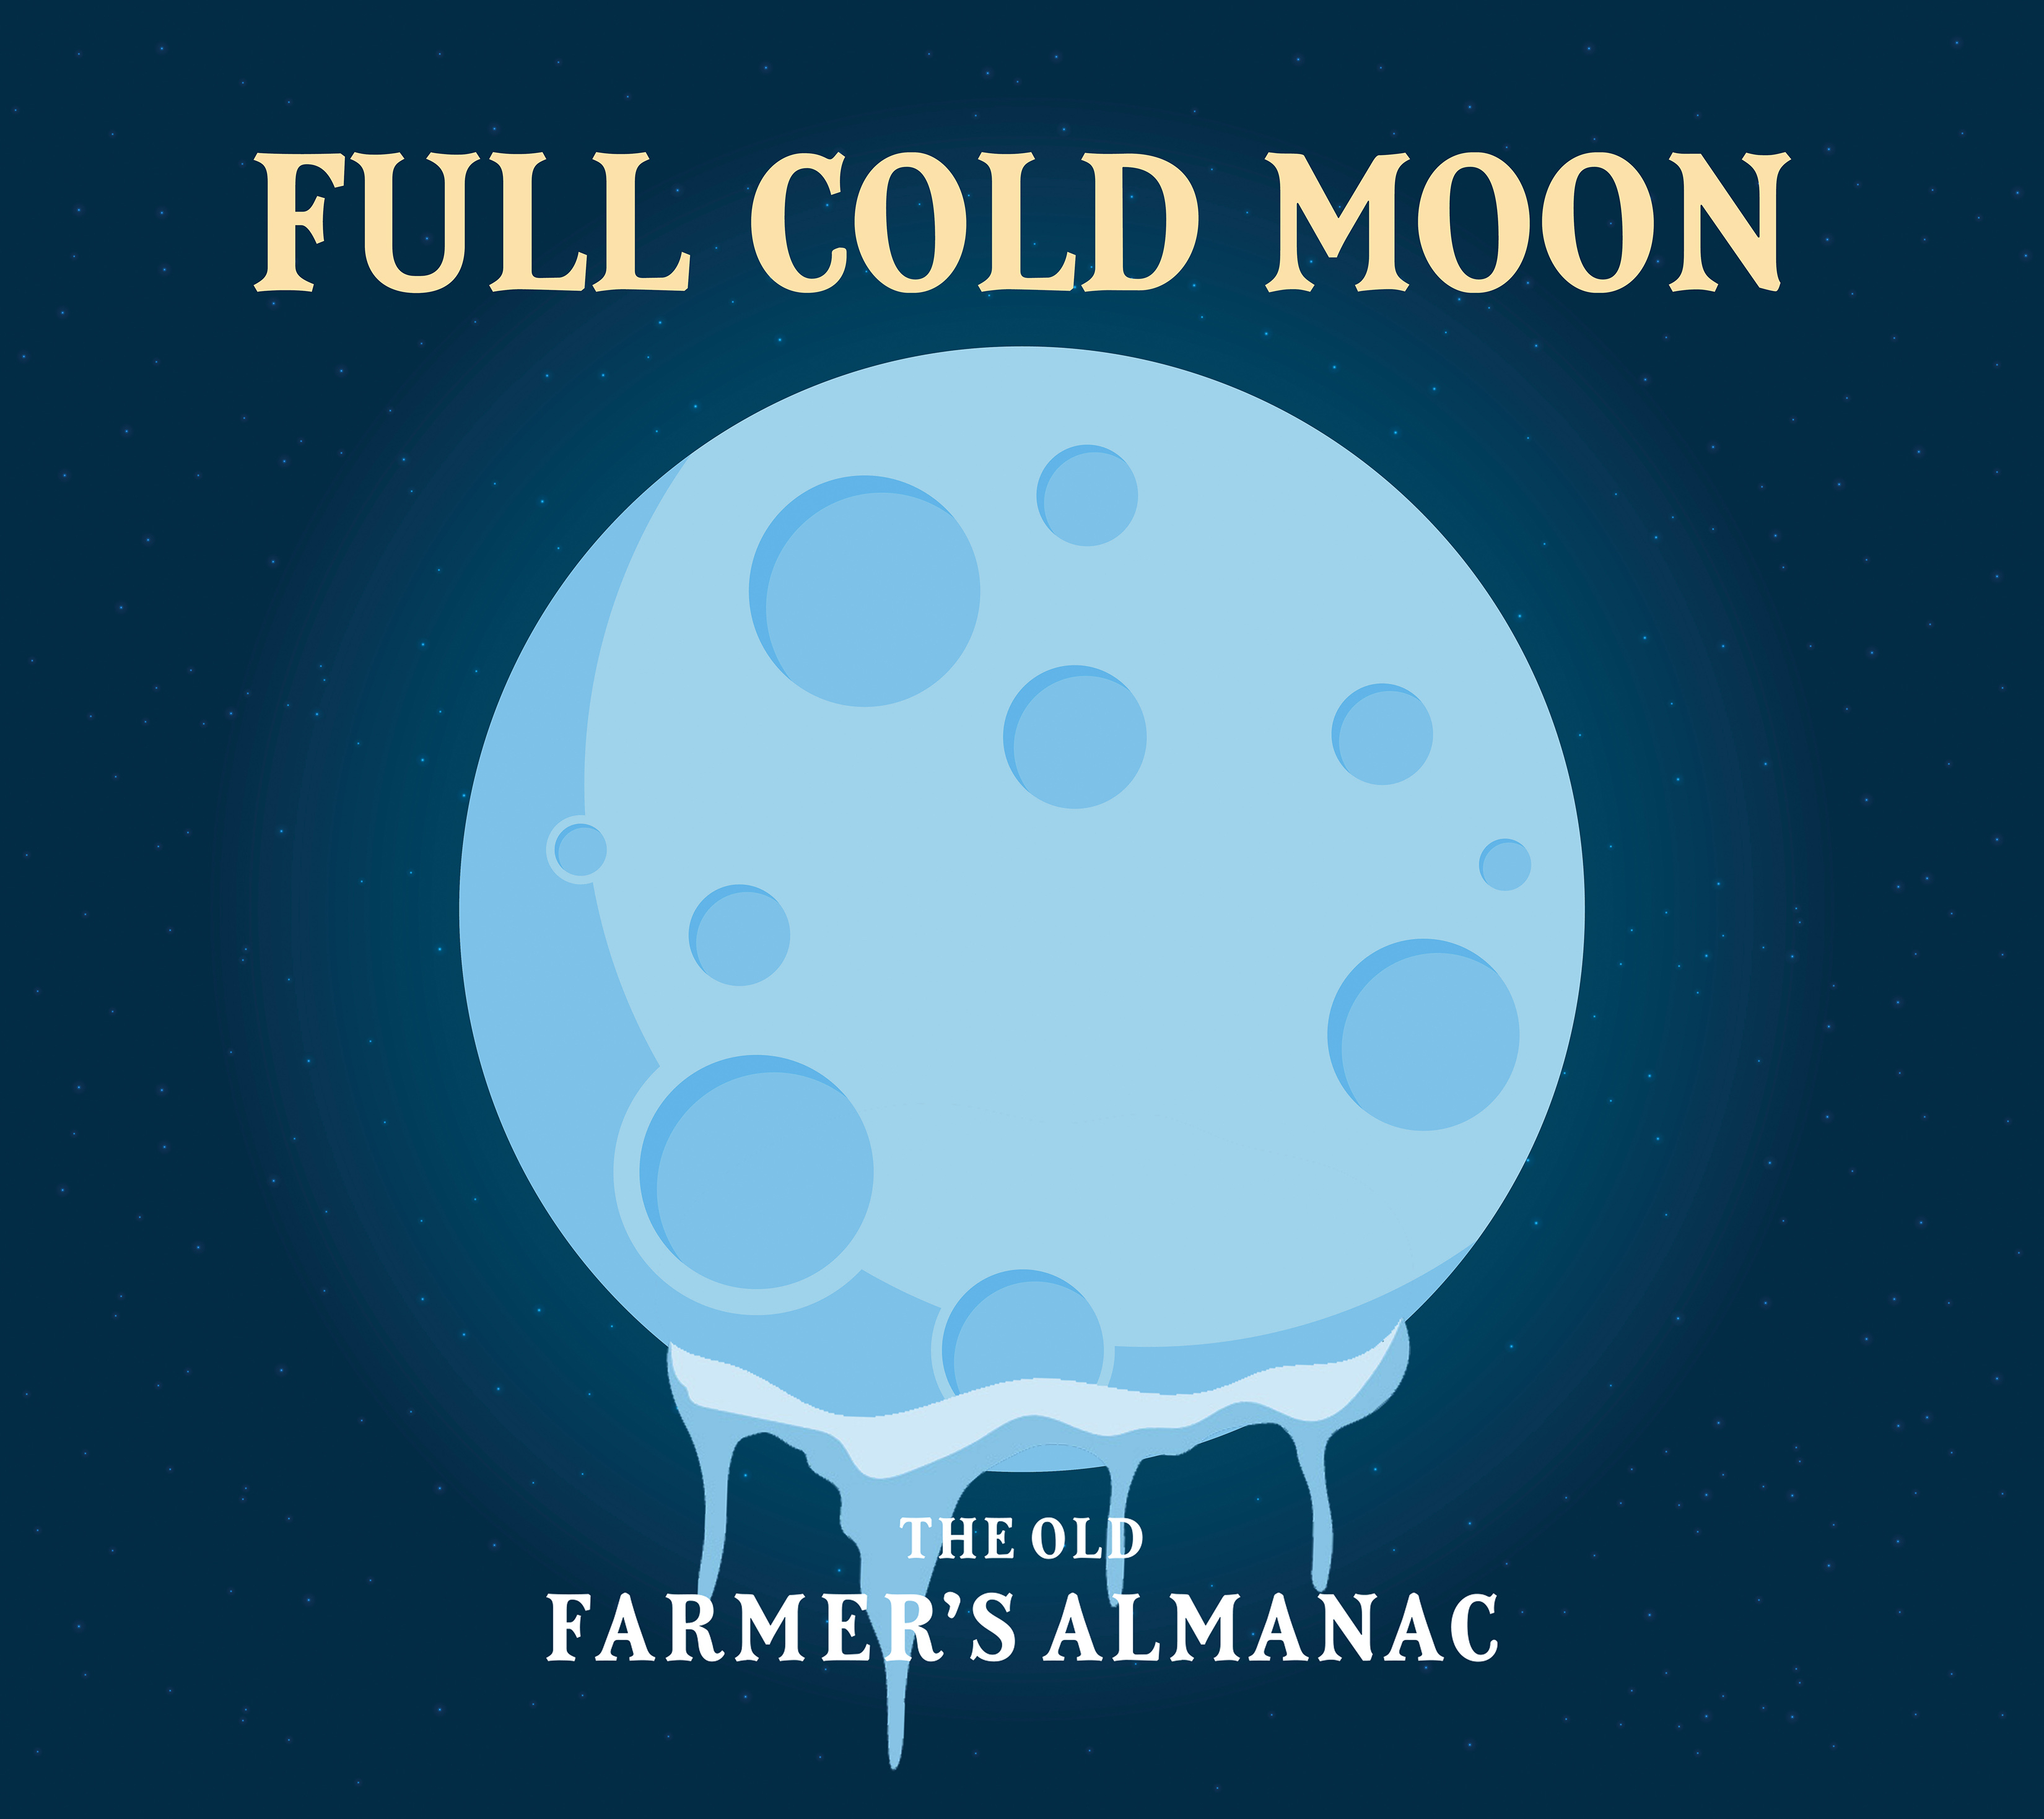 Full Moon On December 12, 2019: The Full Cold Moon | The Old